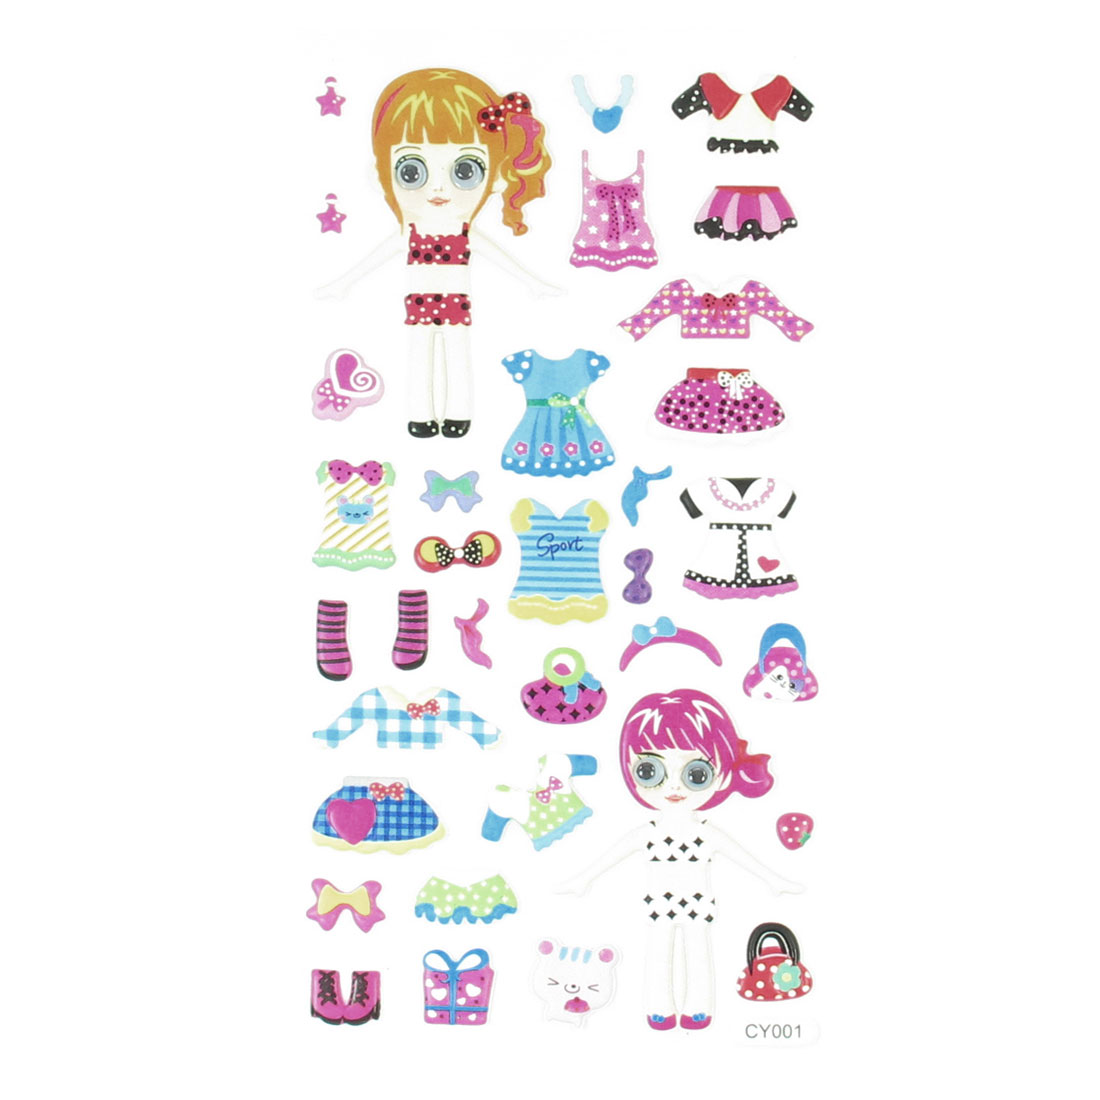 Wobble Eyes Girl Dolls Dress Up Waterproof Craft DIY Foam Sticker